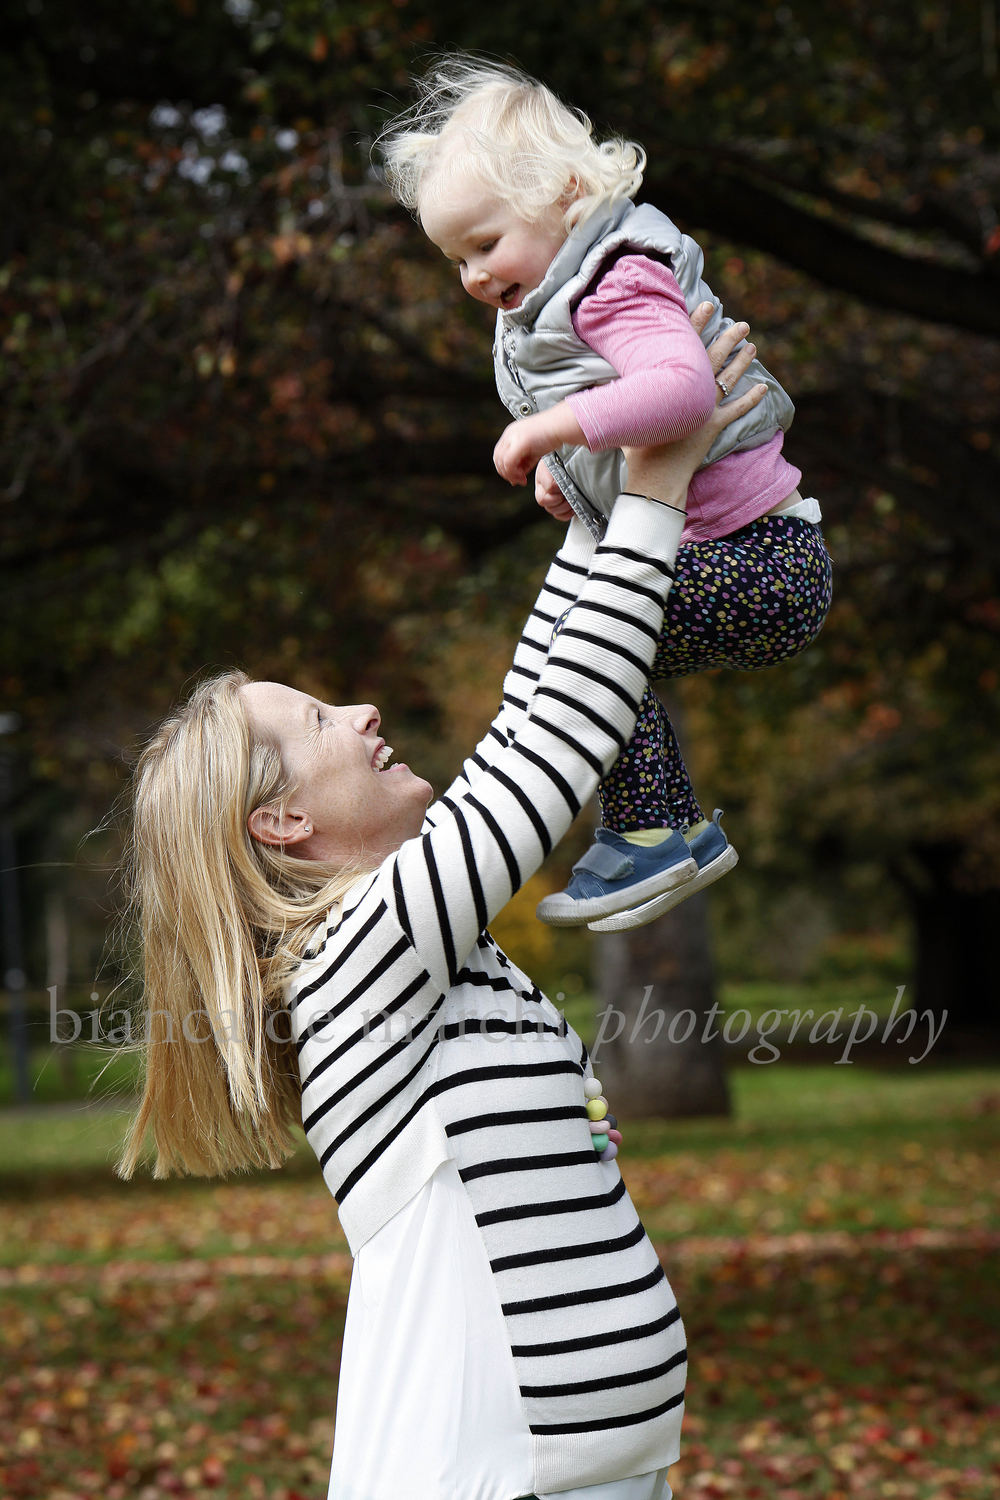 CHP_Export_112403036_Network story about exercise during pregnancy %5BPIC%5D Mary Milnes keeps fit durin.jpg